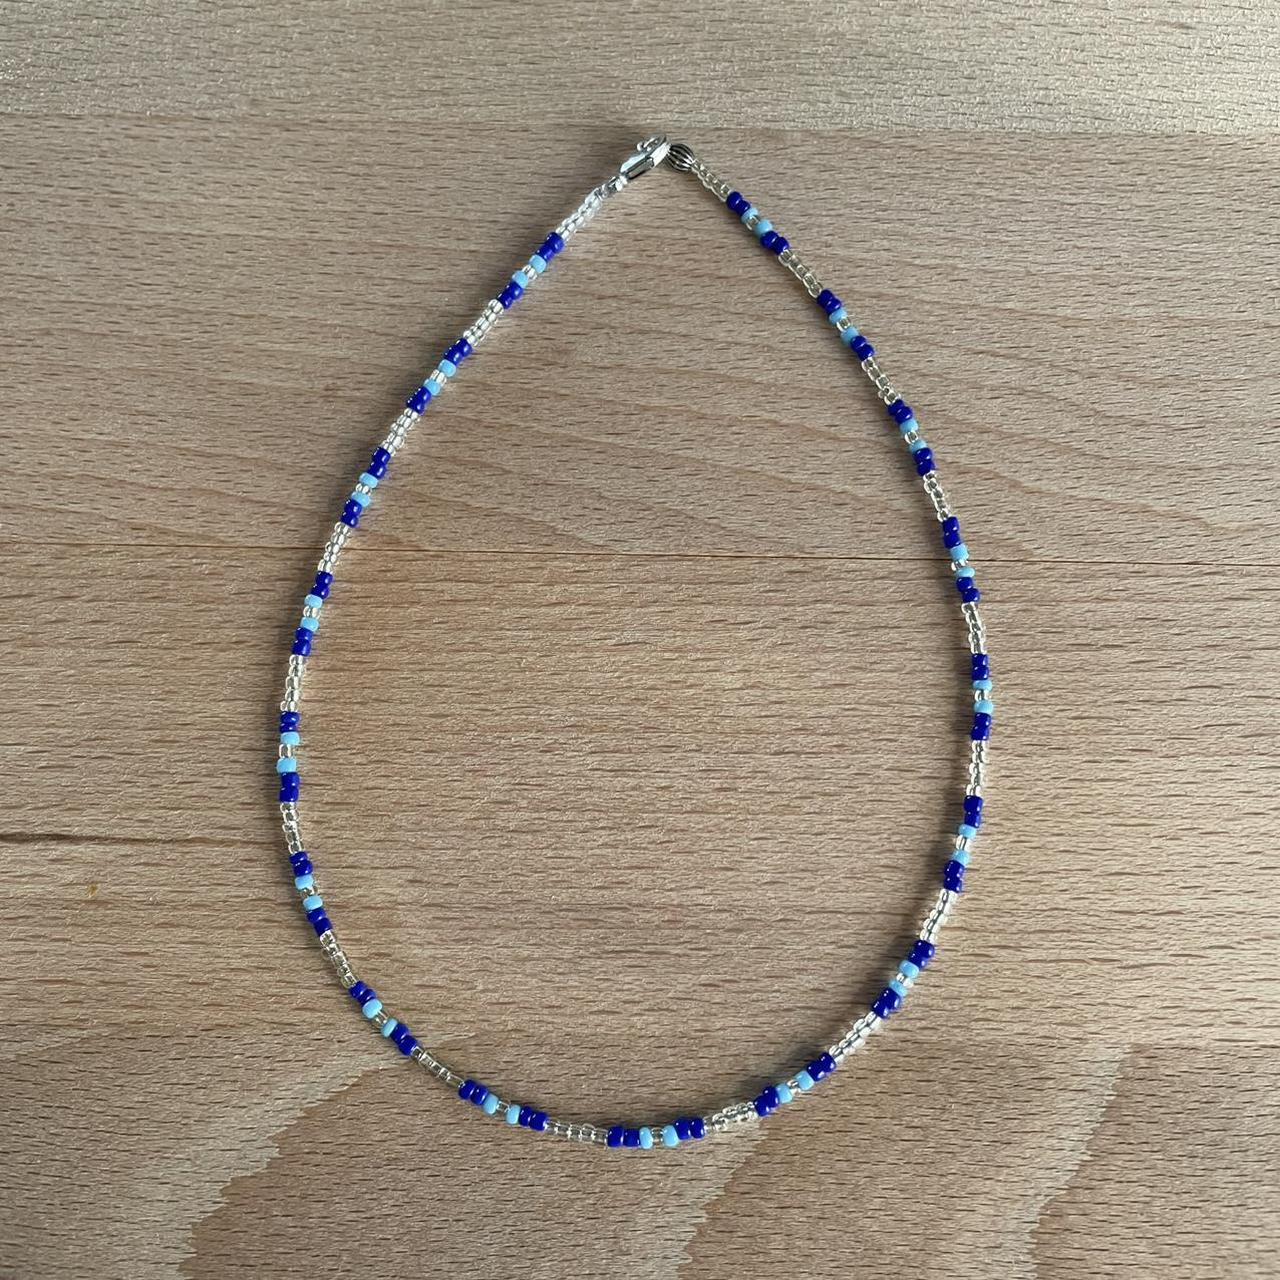 Product Image 1 - 🧿💙blues seed bead necklace💙🧿  -handmade by